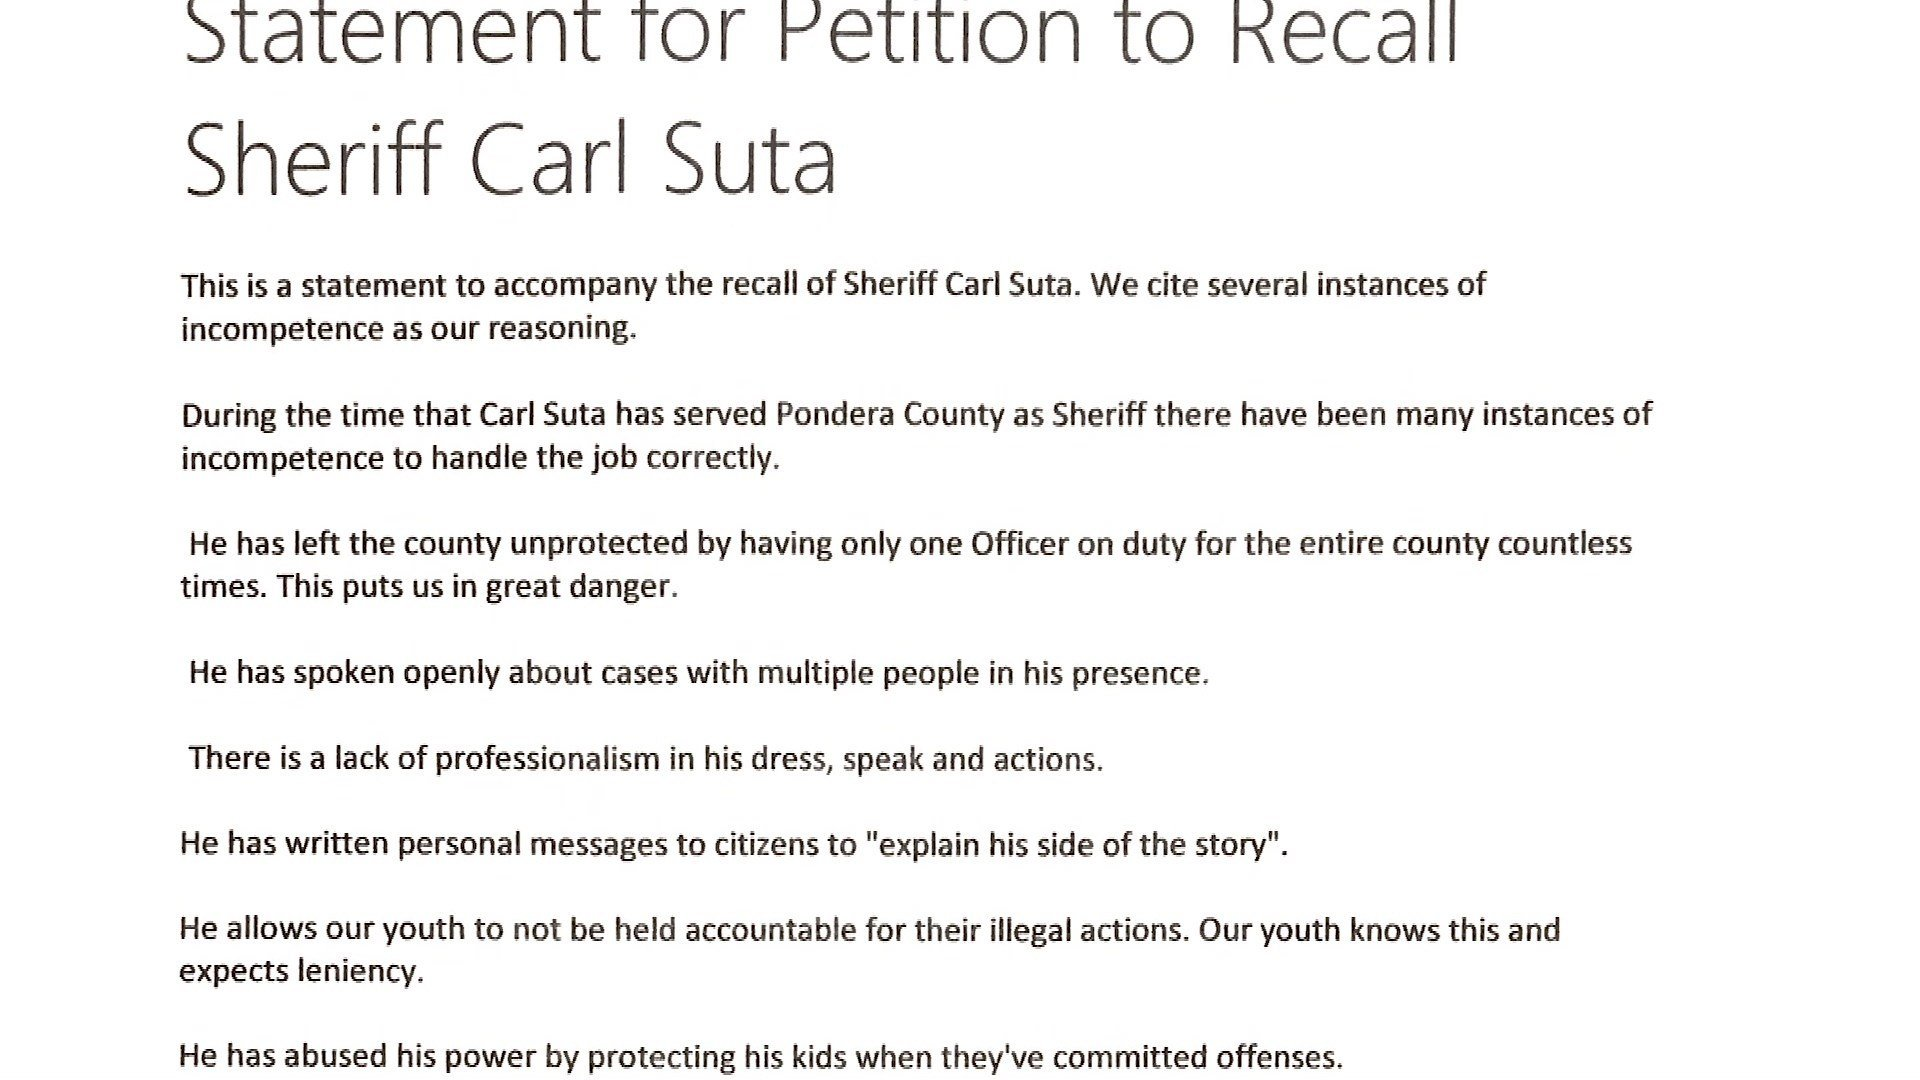 The petition's accompanying statementalleges several instances of Suta being incompetent.